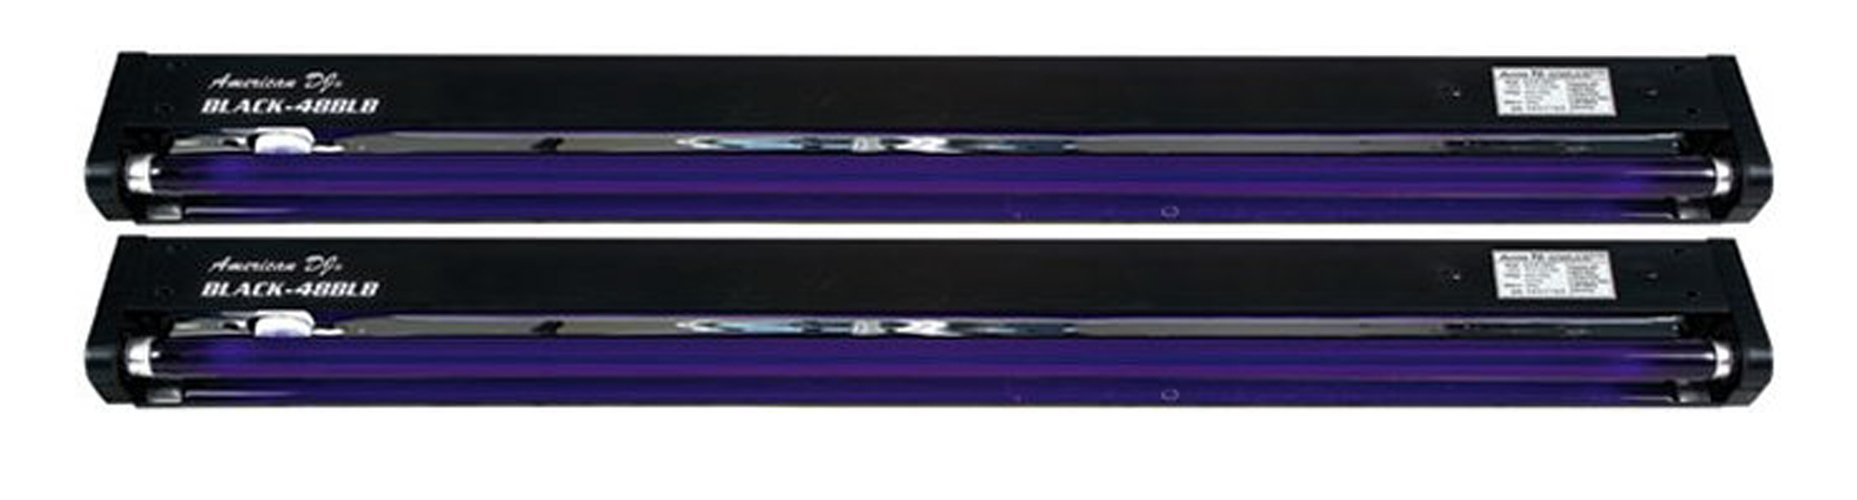 American DJ 48 Inch UV Black Pro Black Light Dorm Party Light Fixture (2 Pack)